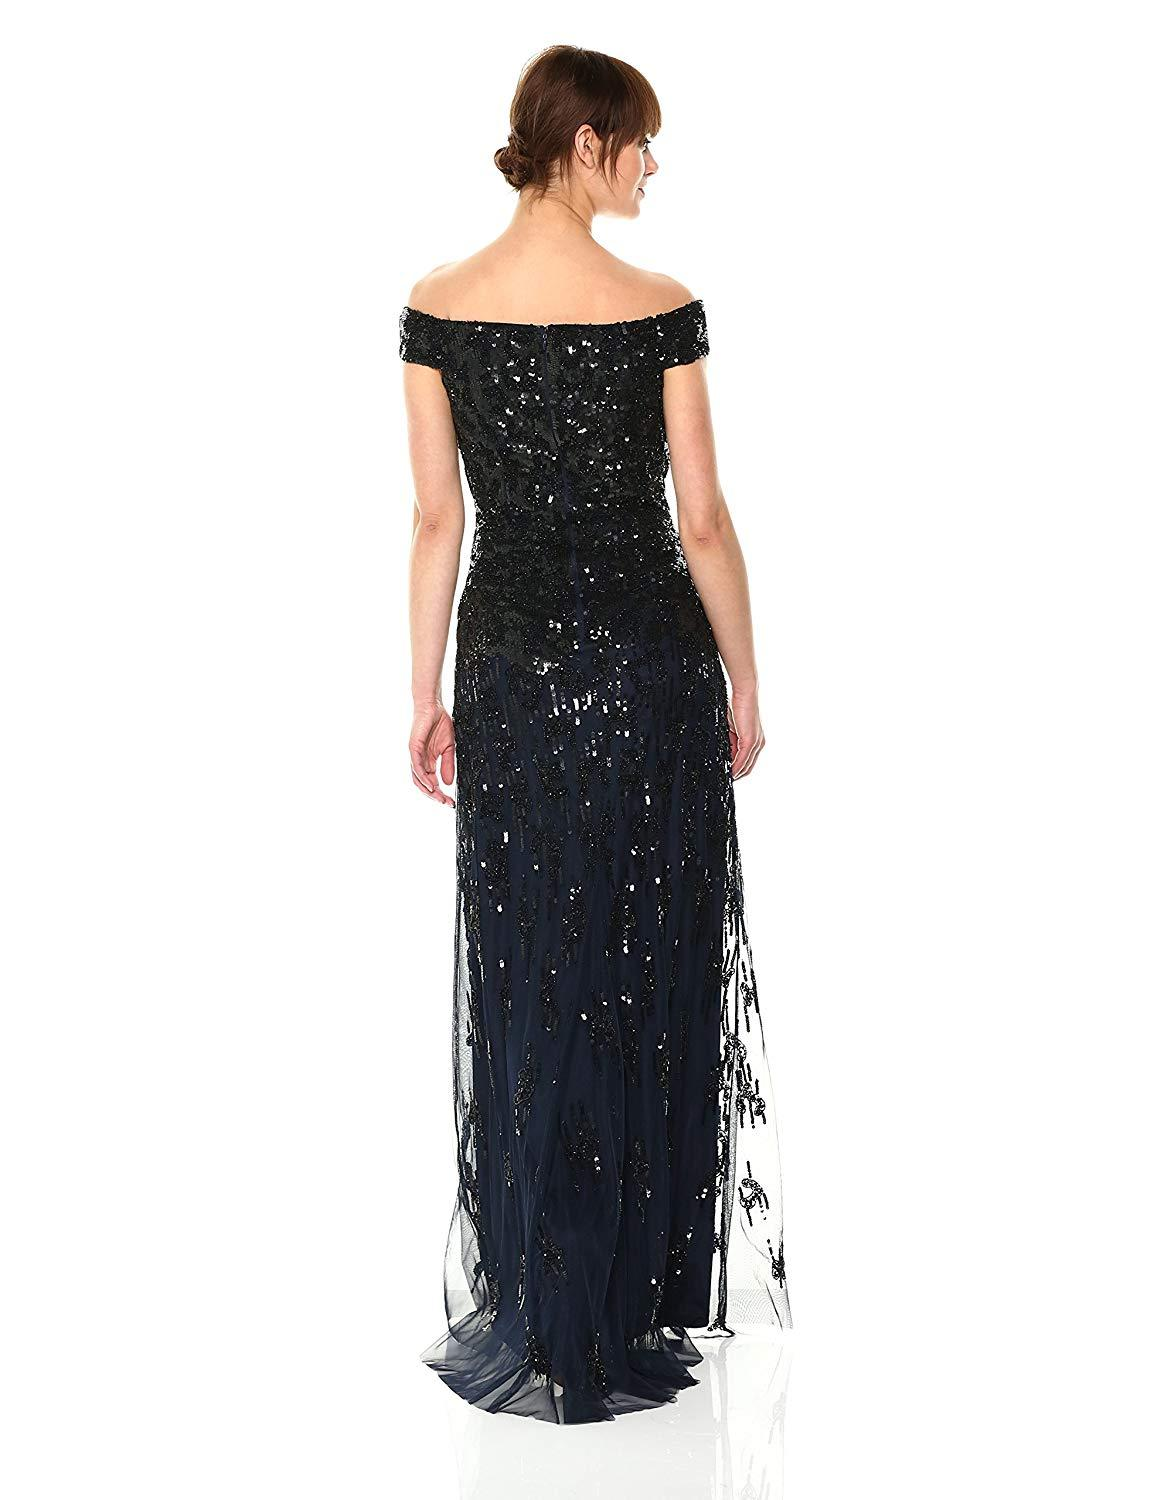 Adrianna Papell - AP1E202441 Embellished Off-Shoulder Evening Gown In Blue and Black